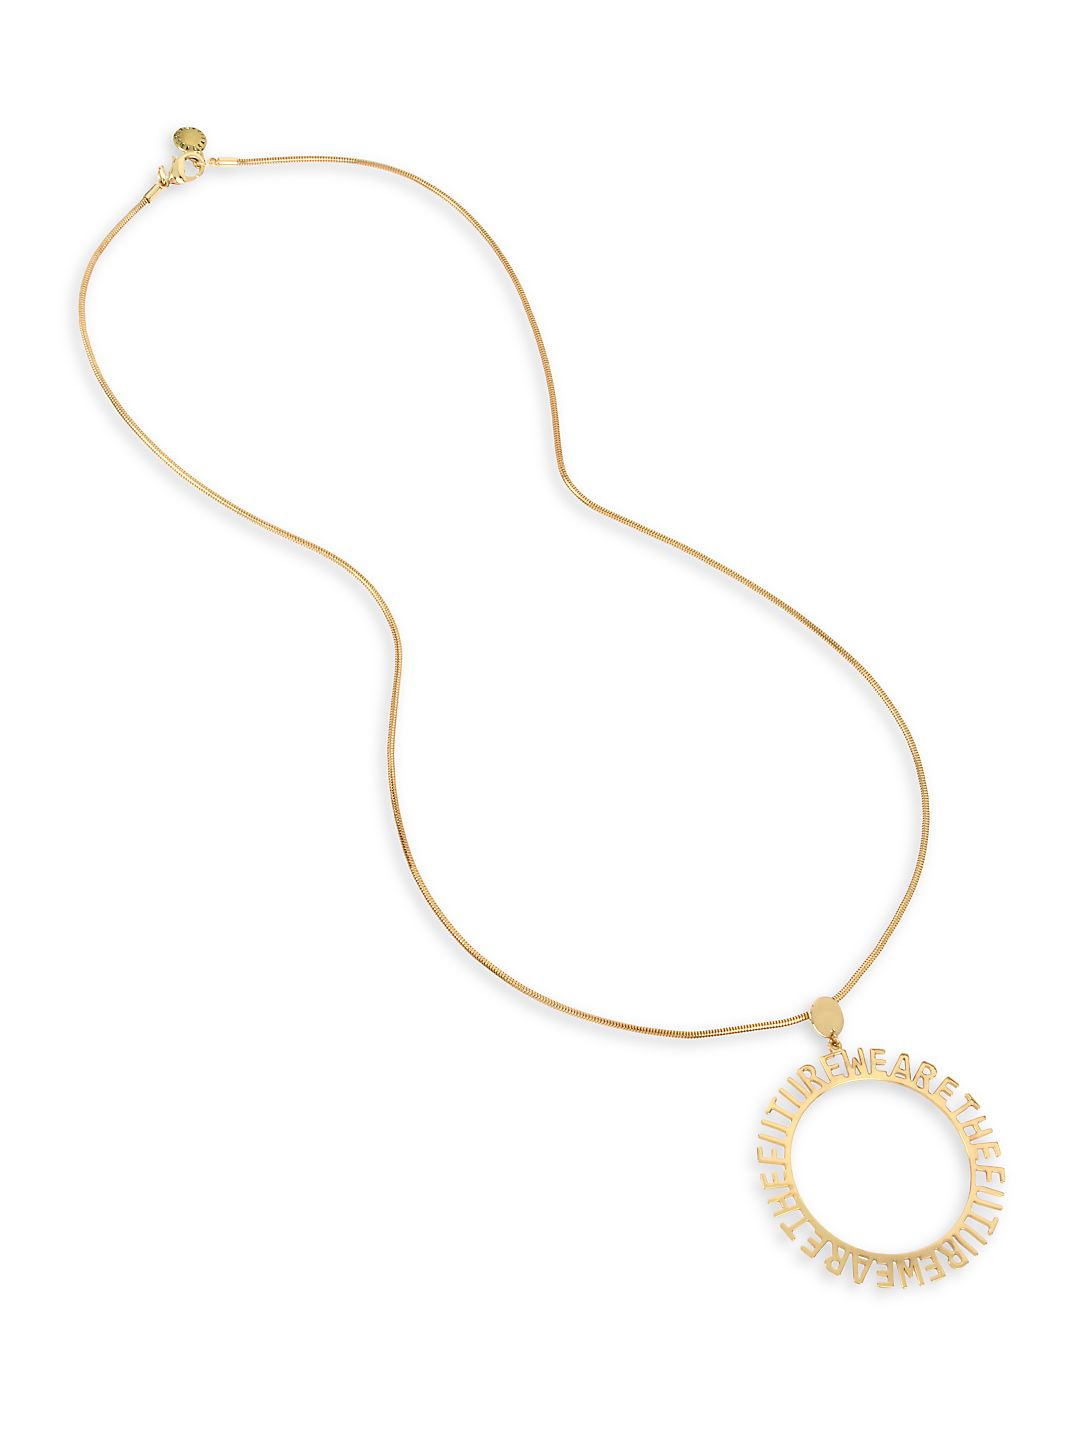 Affirmation Goldtone Circle Pendant Necklace